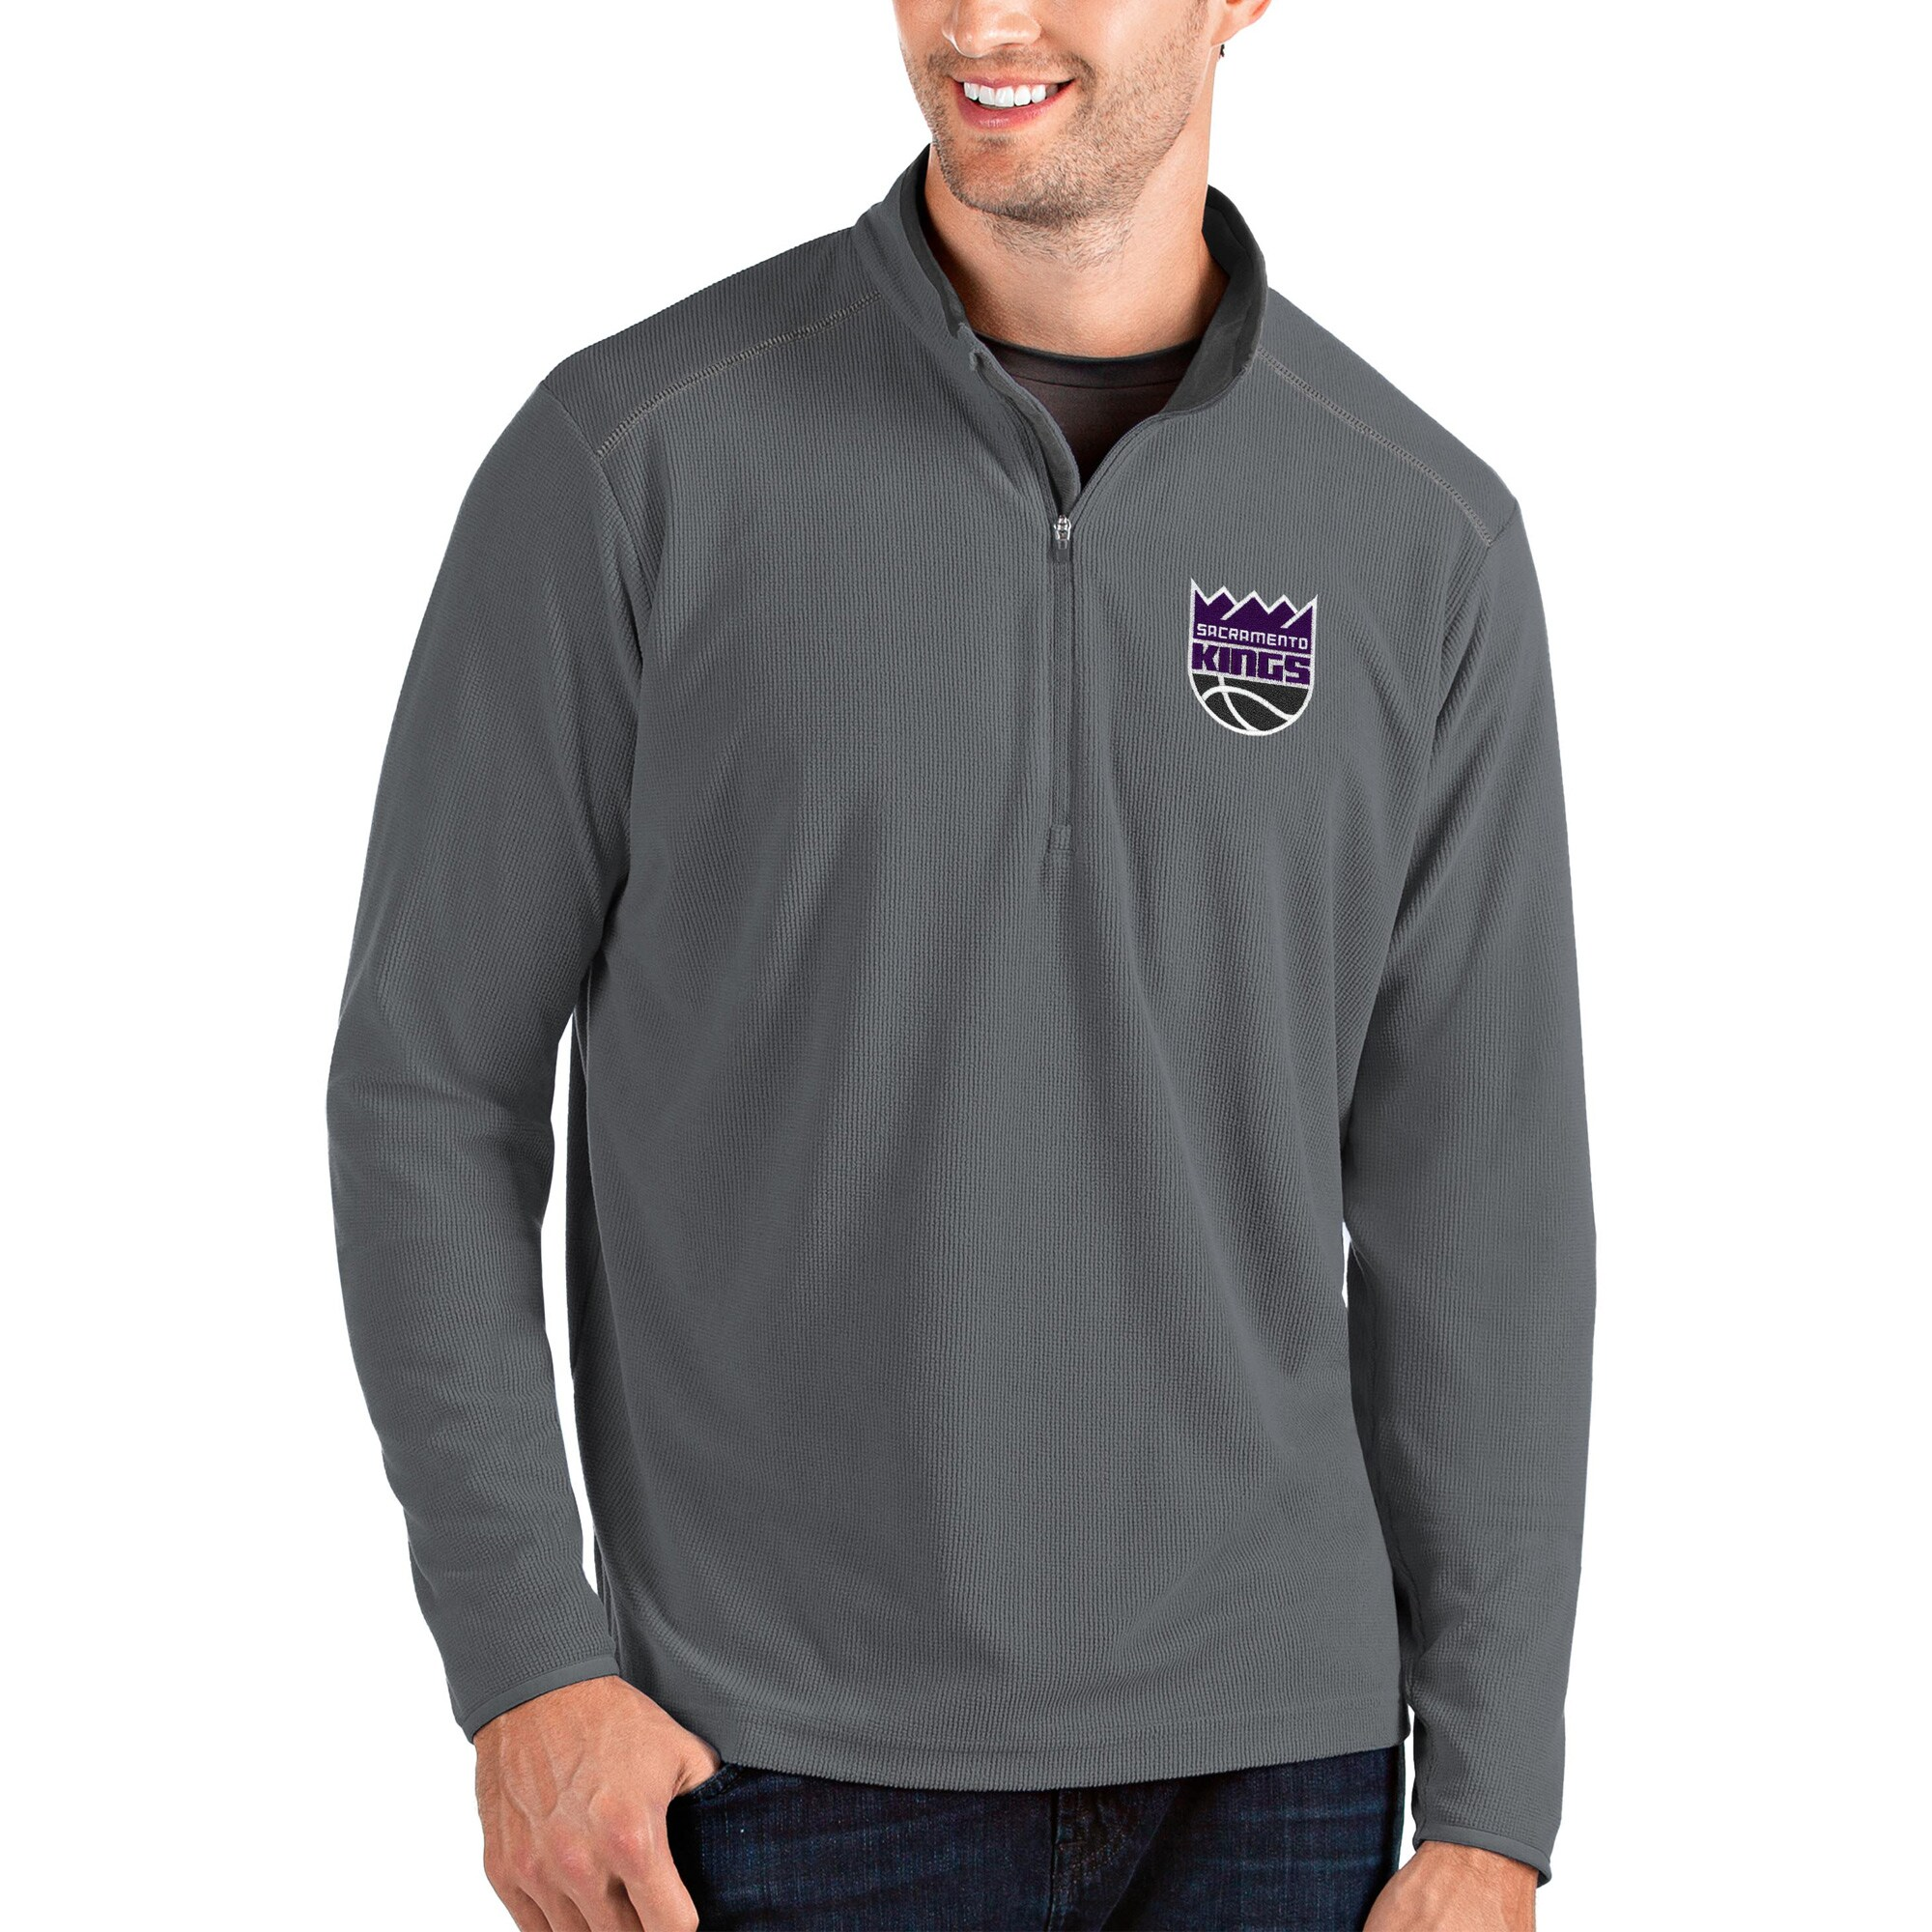 Sacramento Kings Antigua Glacier Quarter-Zip Pullover Jacket - Charcoal/Gray